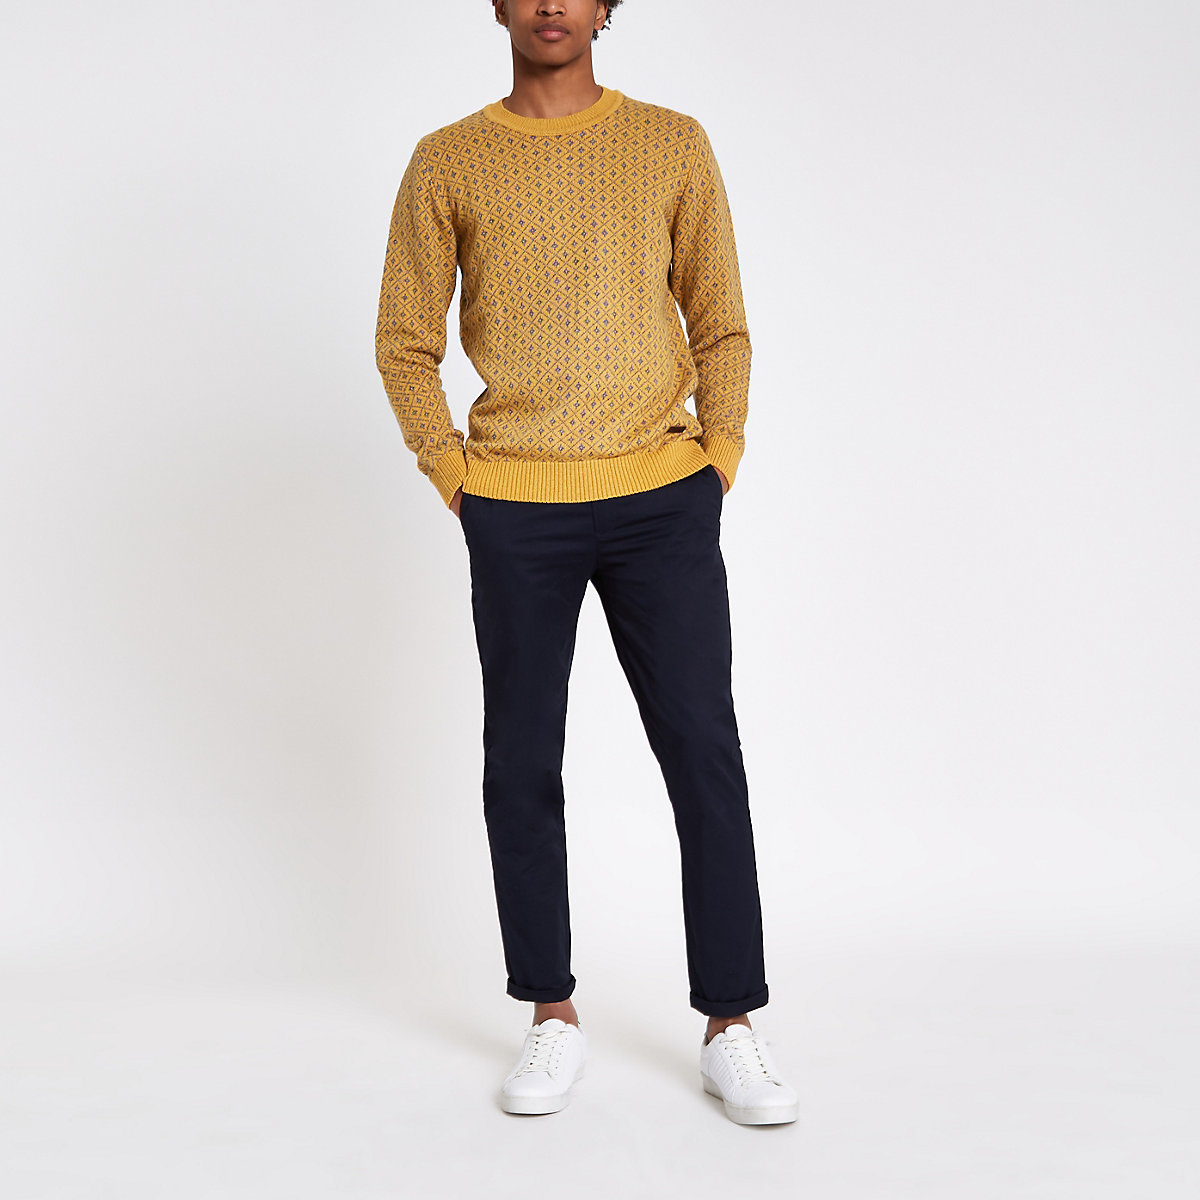 Pepe Jeans yellow print jumper